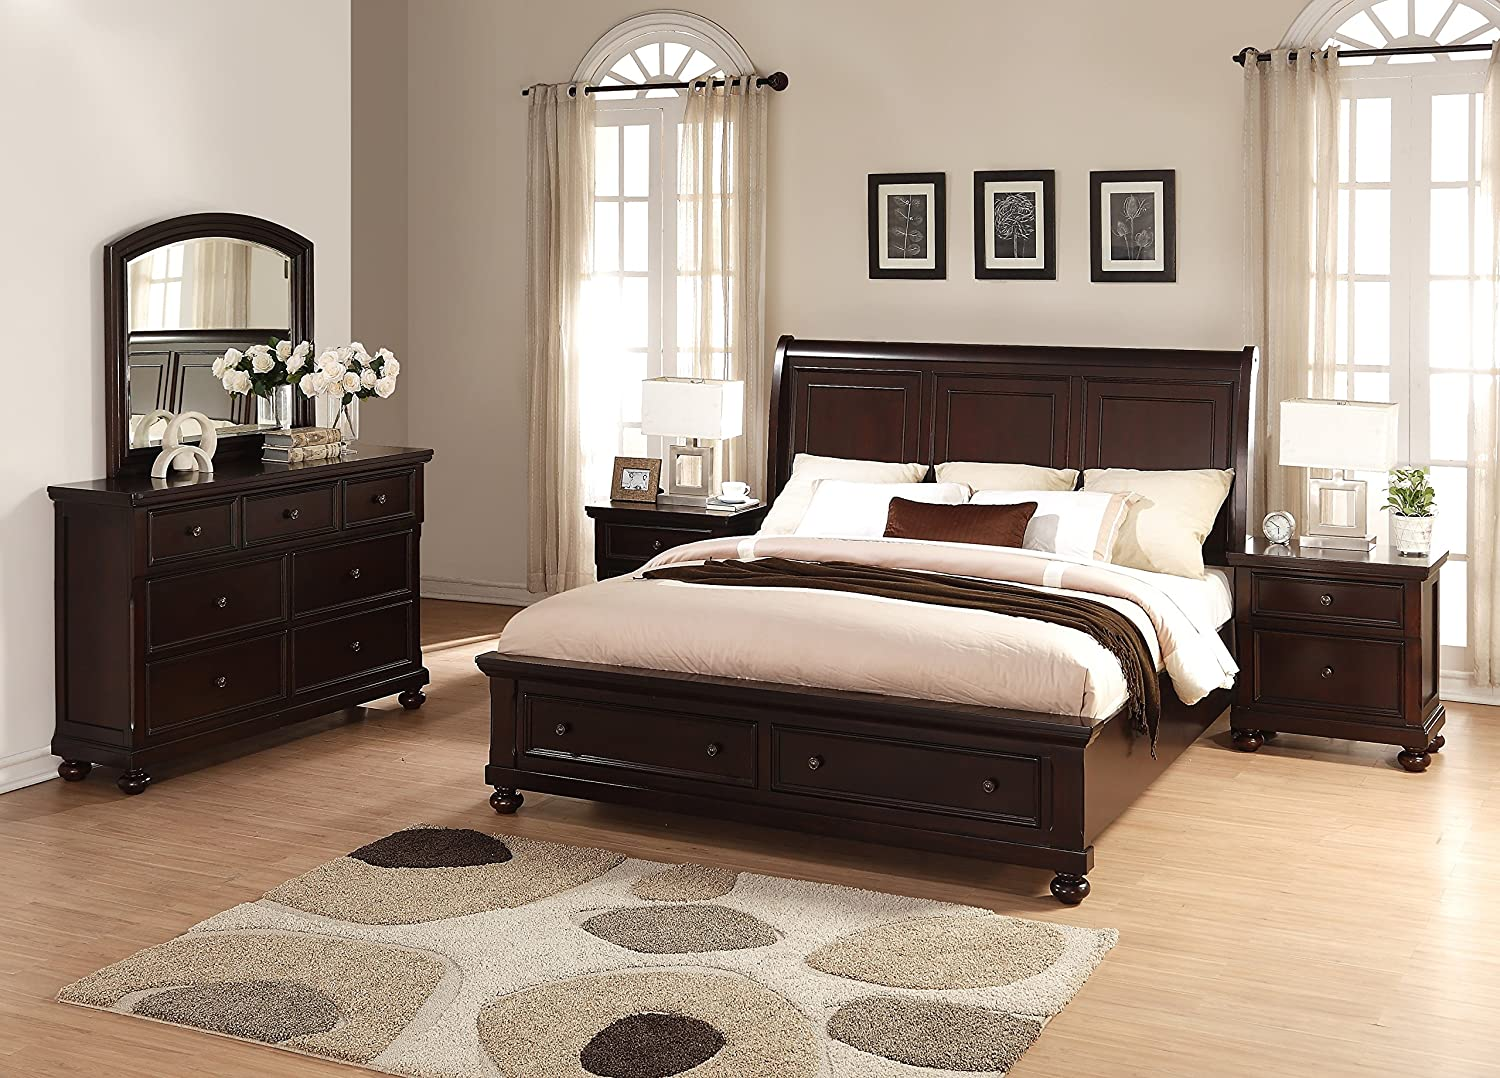 Amazon.com: Roundhill Furniture Brishland Storage Bedroom Set ... on rustic living room sets, pedestal bedroom sets, rustic bedroom furniture, rustic pine king bedroom set, log bedroom sets, master bedroom furniture sets, rustic western cross comforter set, rustic texas bedroom sets king, rustic bathroom sets, modern bedroom furniture sets, big post bedroom sets, rustic king size comforters, california king bedroom sets, big lots bedroom sets, western bedroom sets, rustic master bedroom, rustic king bed, star furniture bedroom sets, prices on ashley bedroom sets, cheap bedroom sets,